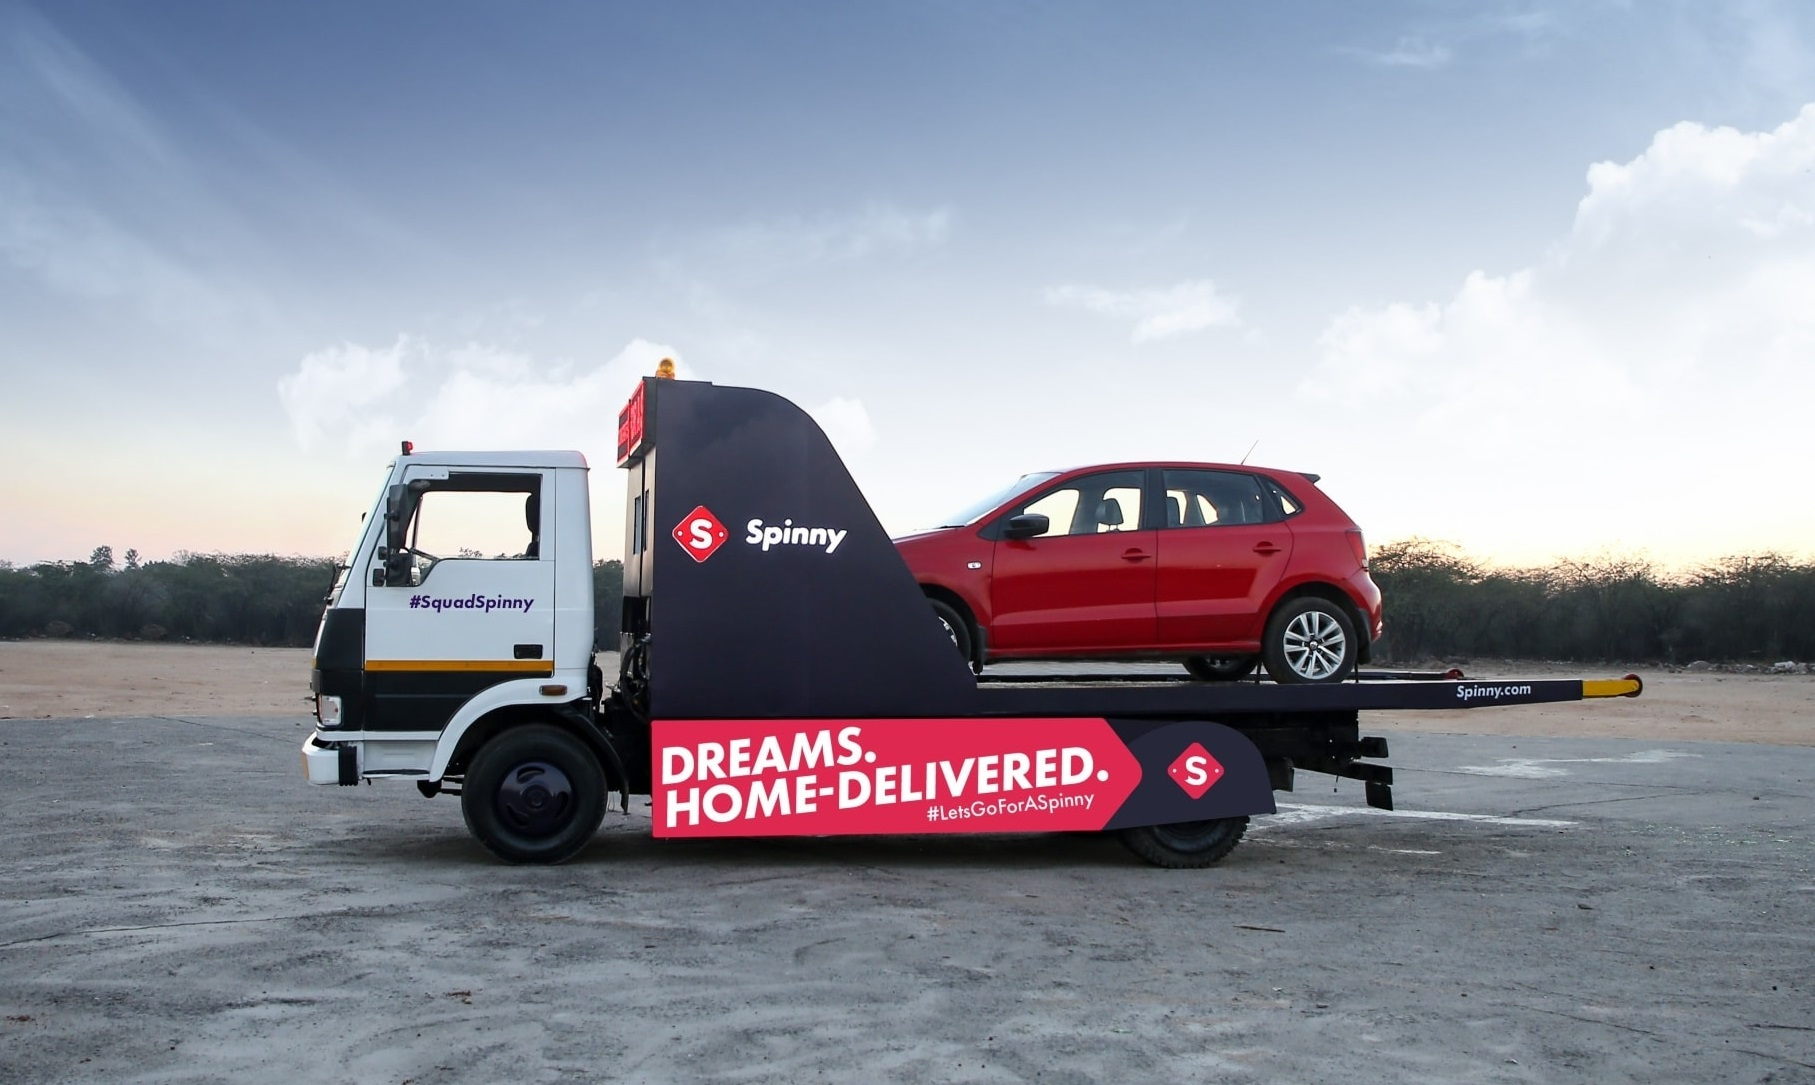 India's Spinny Acquires Truebil to Challenge Auto Giants in Used Cars Segment